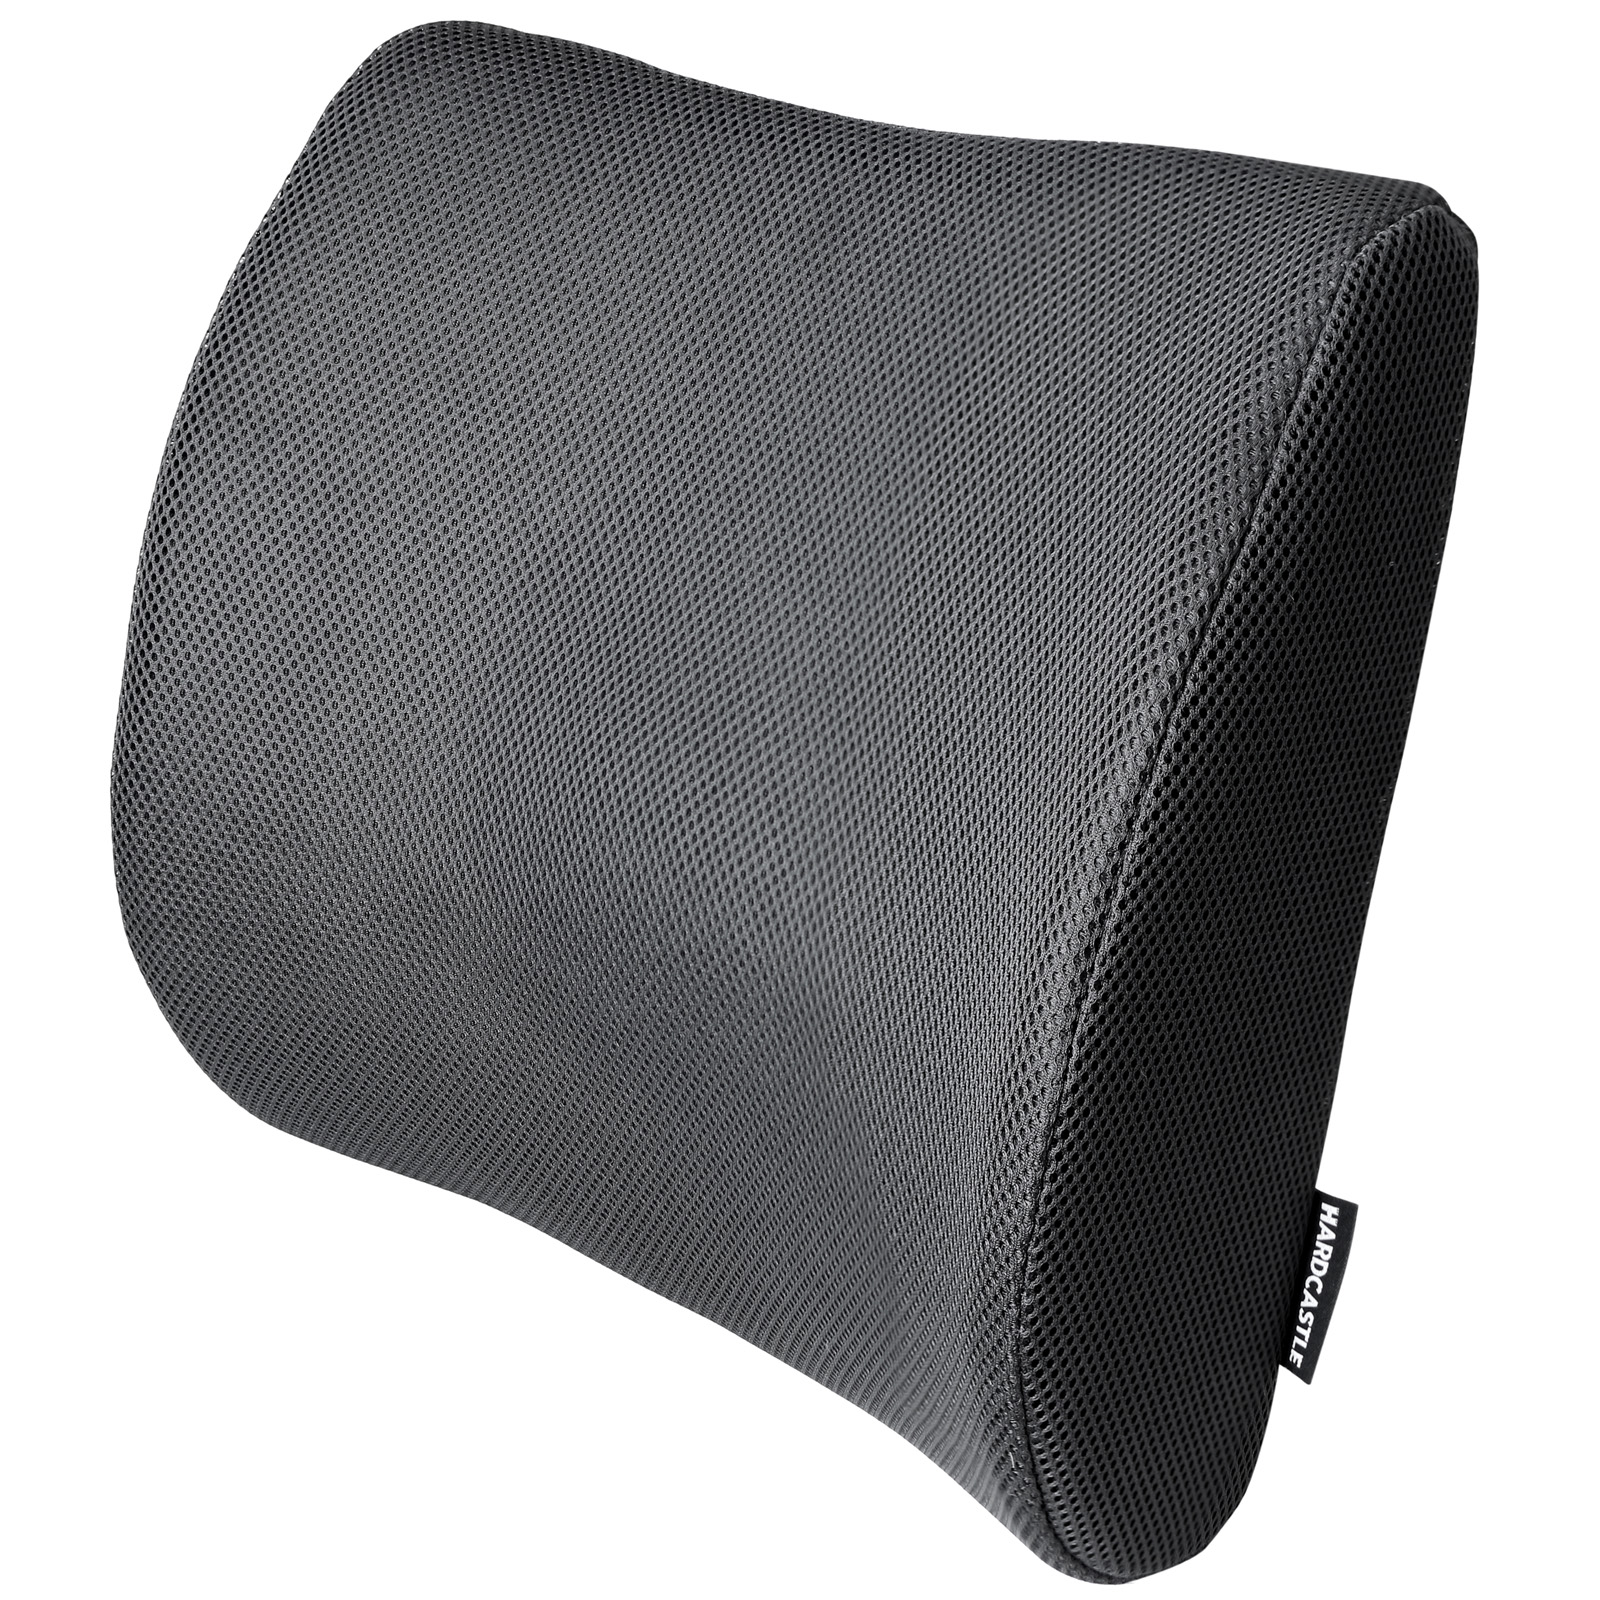 black memory foam lower back lumbar posture support seat cushion car home office ebay. Black Bedroom Furniture Sets. Home Design Ideas